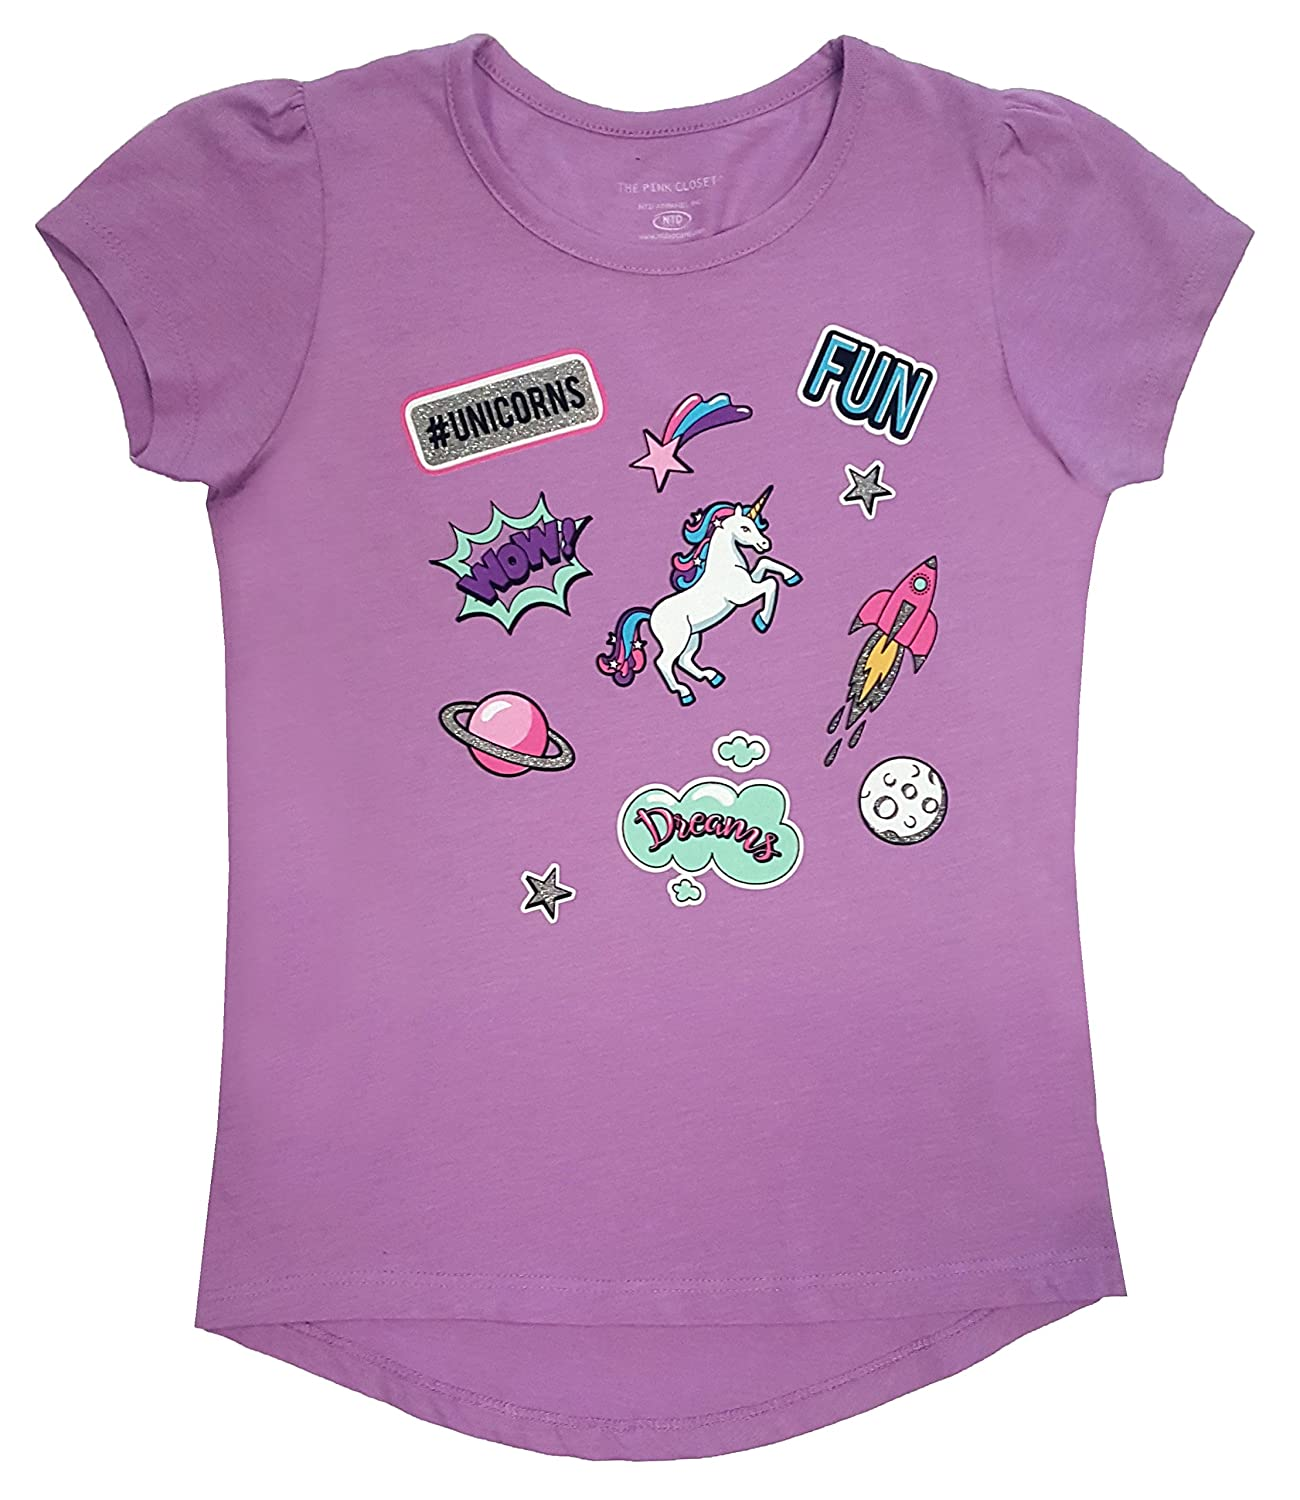 Novel Teez Designs - Girl's Unicorn Short Sleeve Shirt with Puff Shoulders, Lilac NTD Apparel